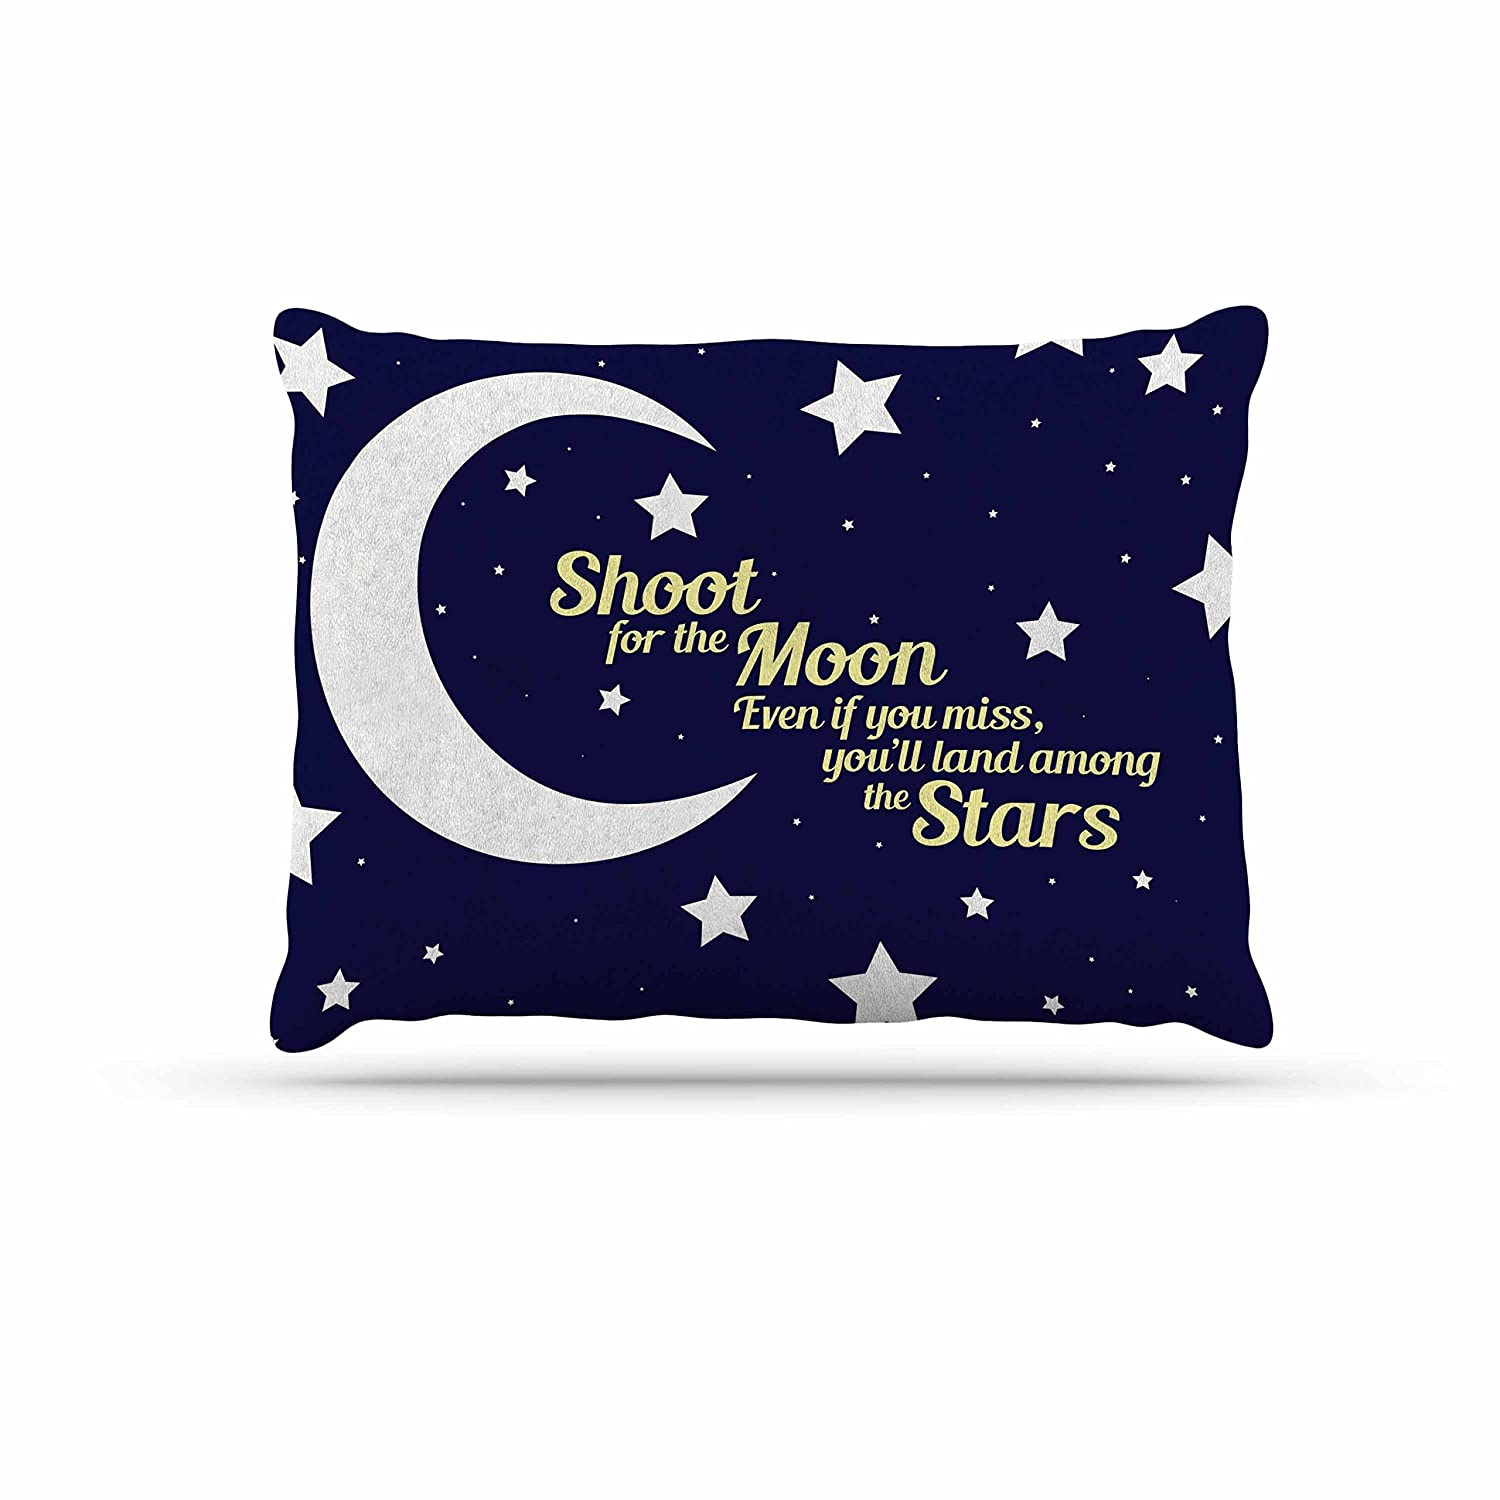 KESS InHouse NL Designs Moon & Stars Quote bluee White Dog Bed, 30  x 40